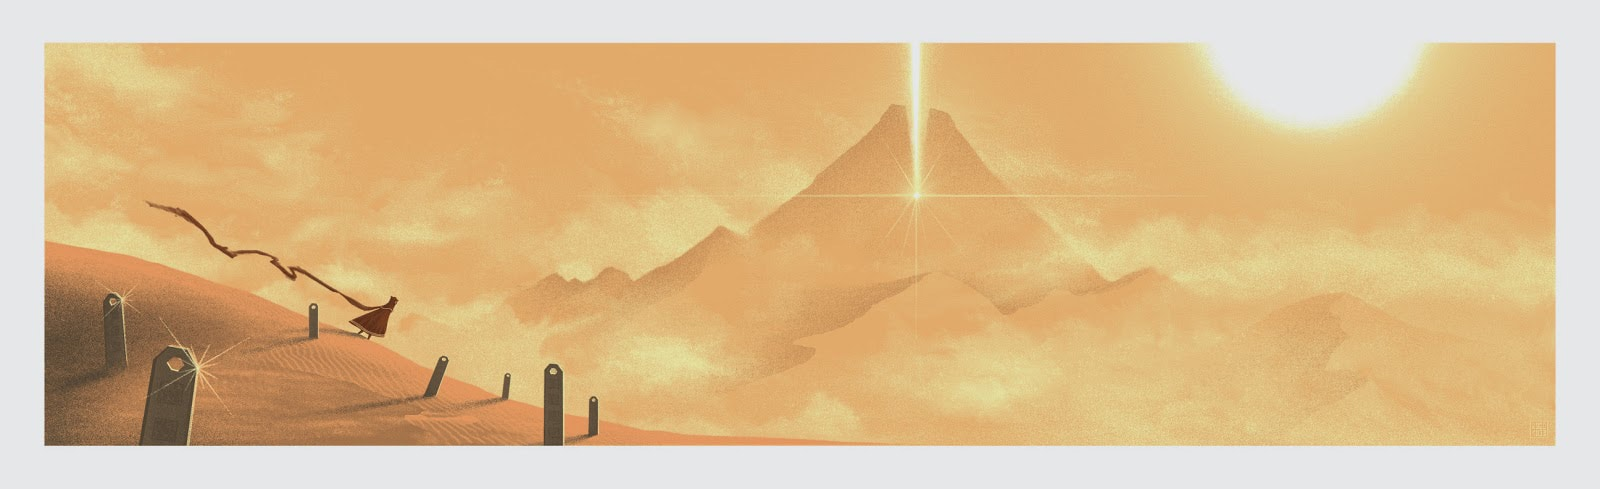 Journey Print by JC Richard